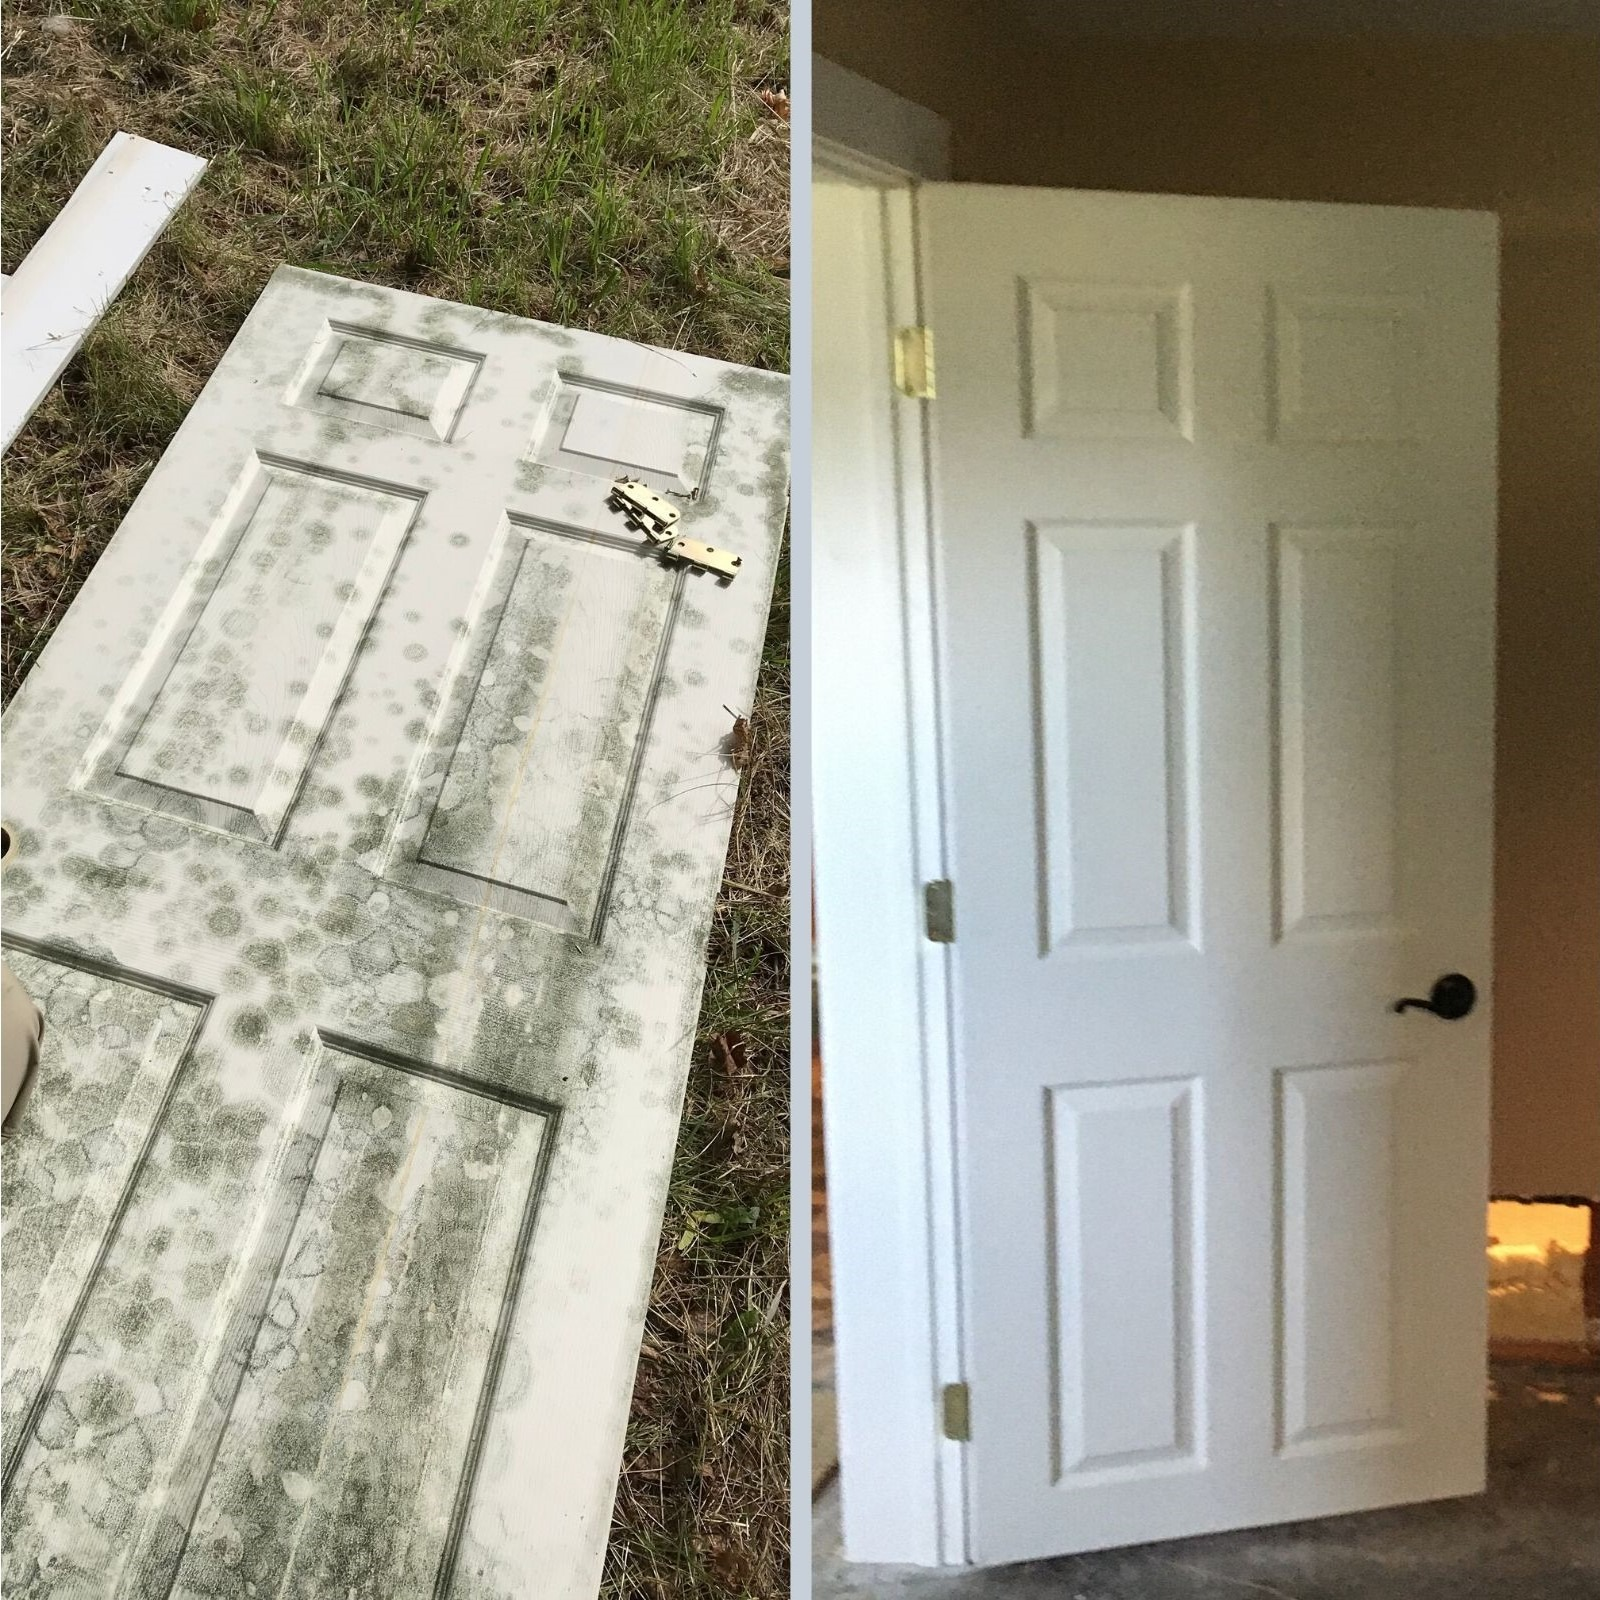 Before and After Mold Remediation in Missoula